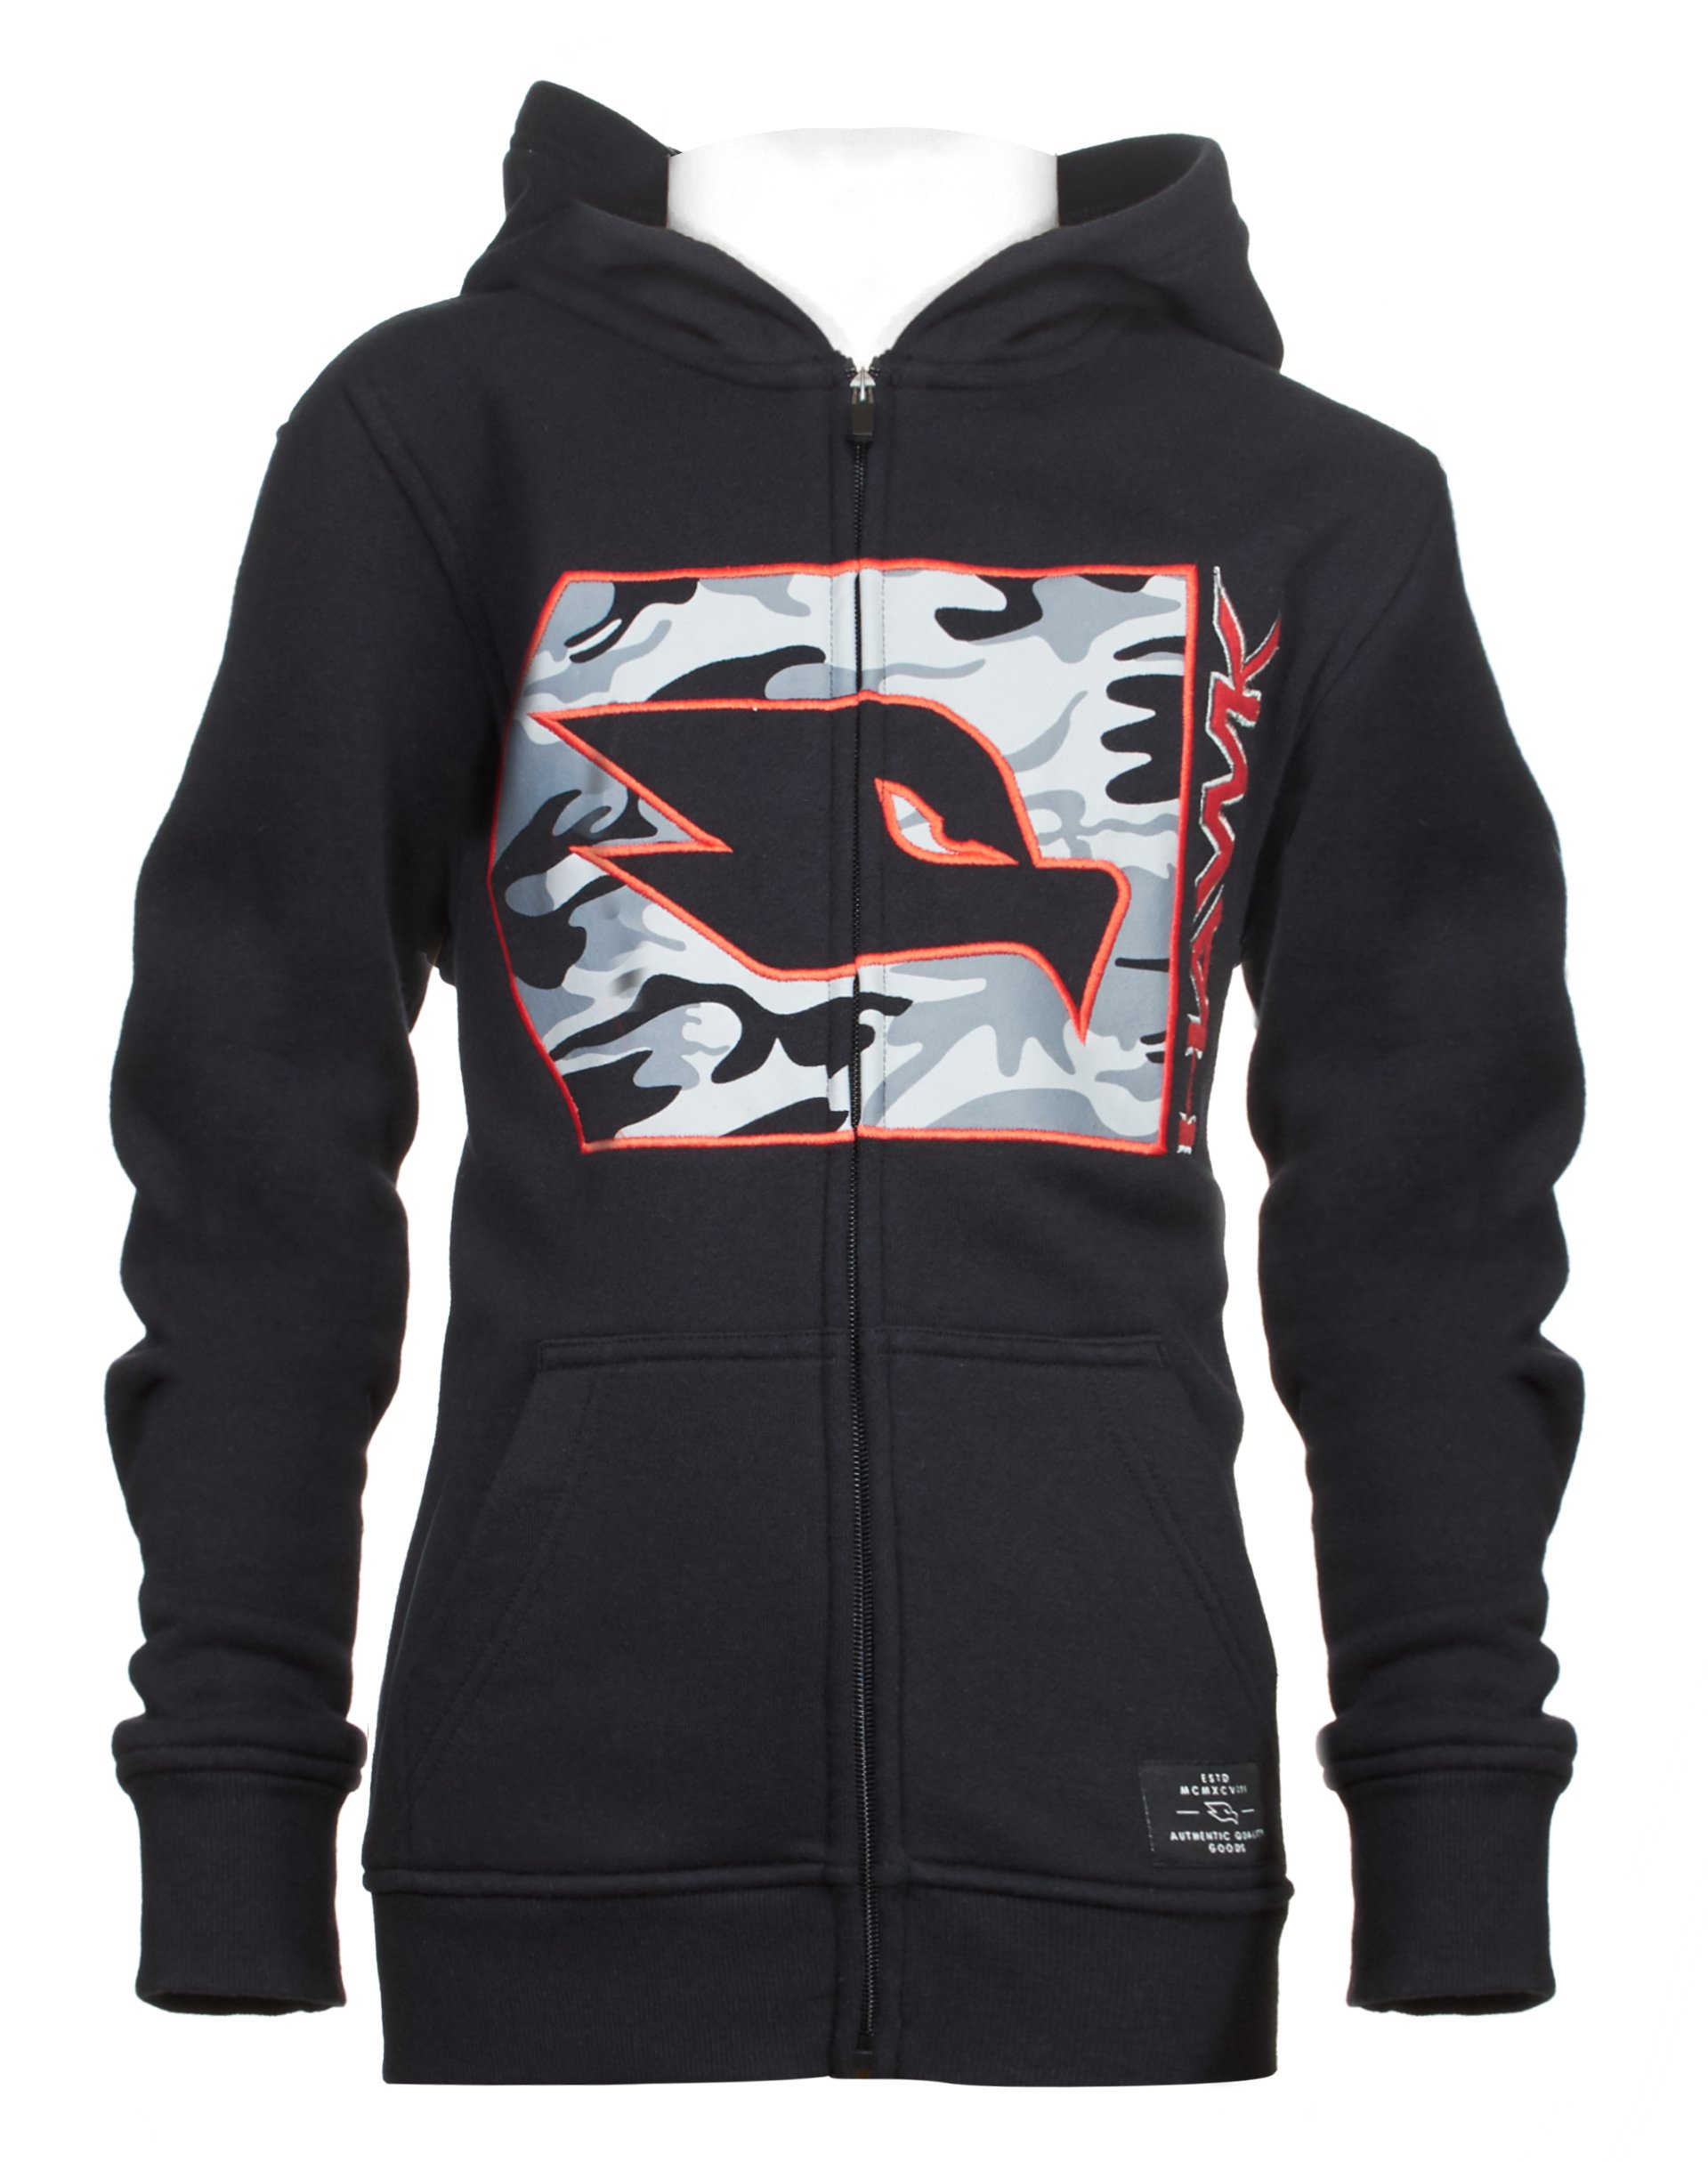 Tony Hawk Kids Boys Fleece Front Zip Hoodie with Camouflage and Embroidery Black Size 14/16